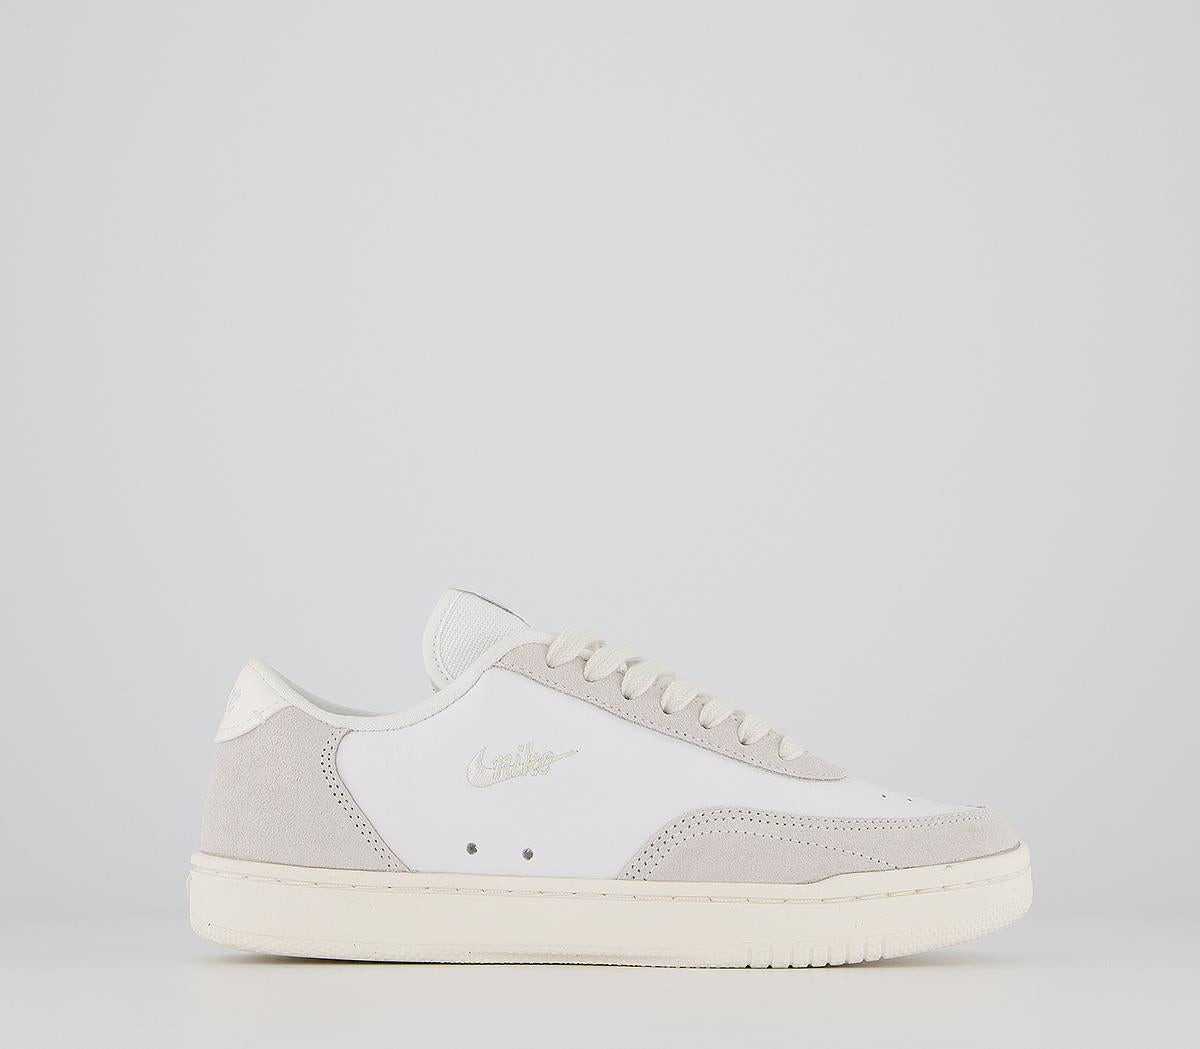 Womens Nike Court Vintage White Sail Platinum Tint Trainers